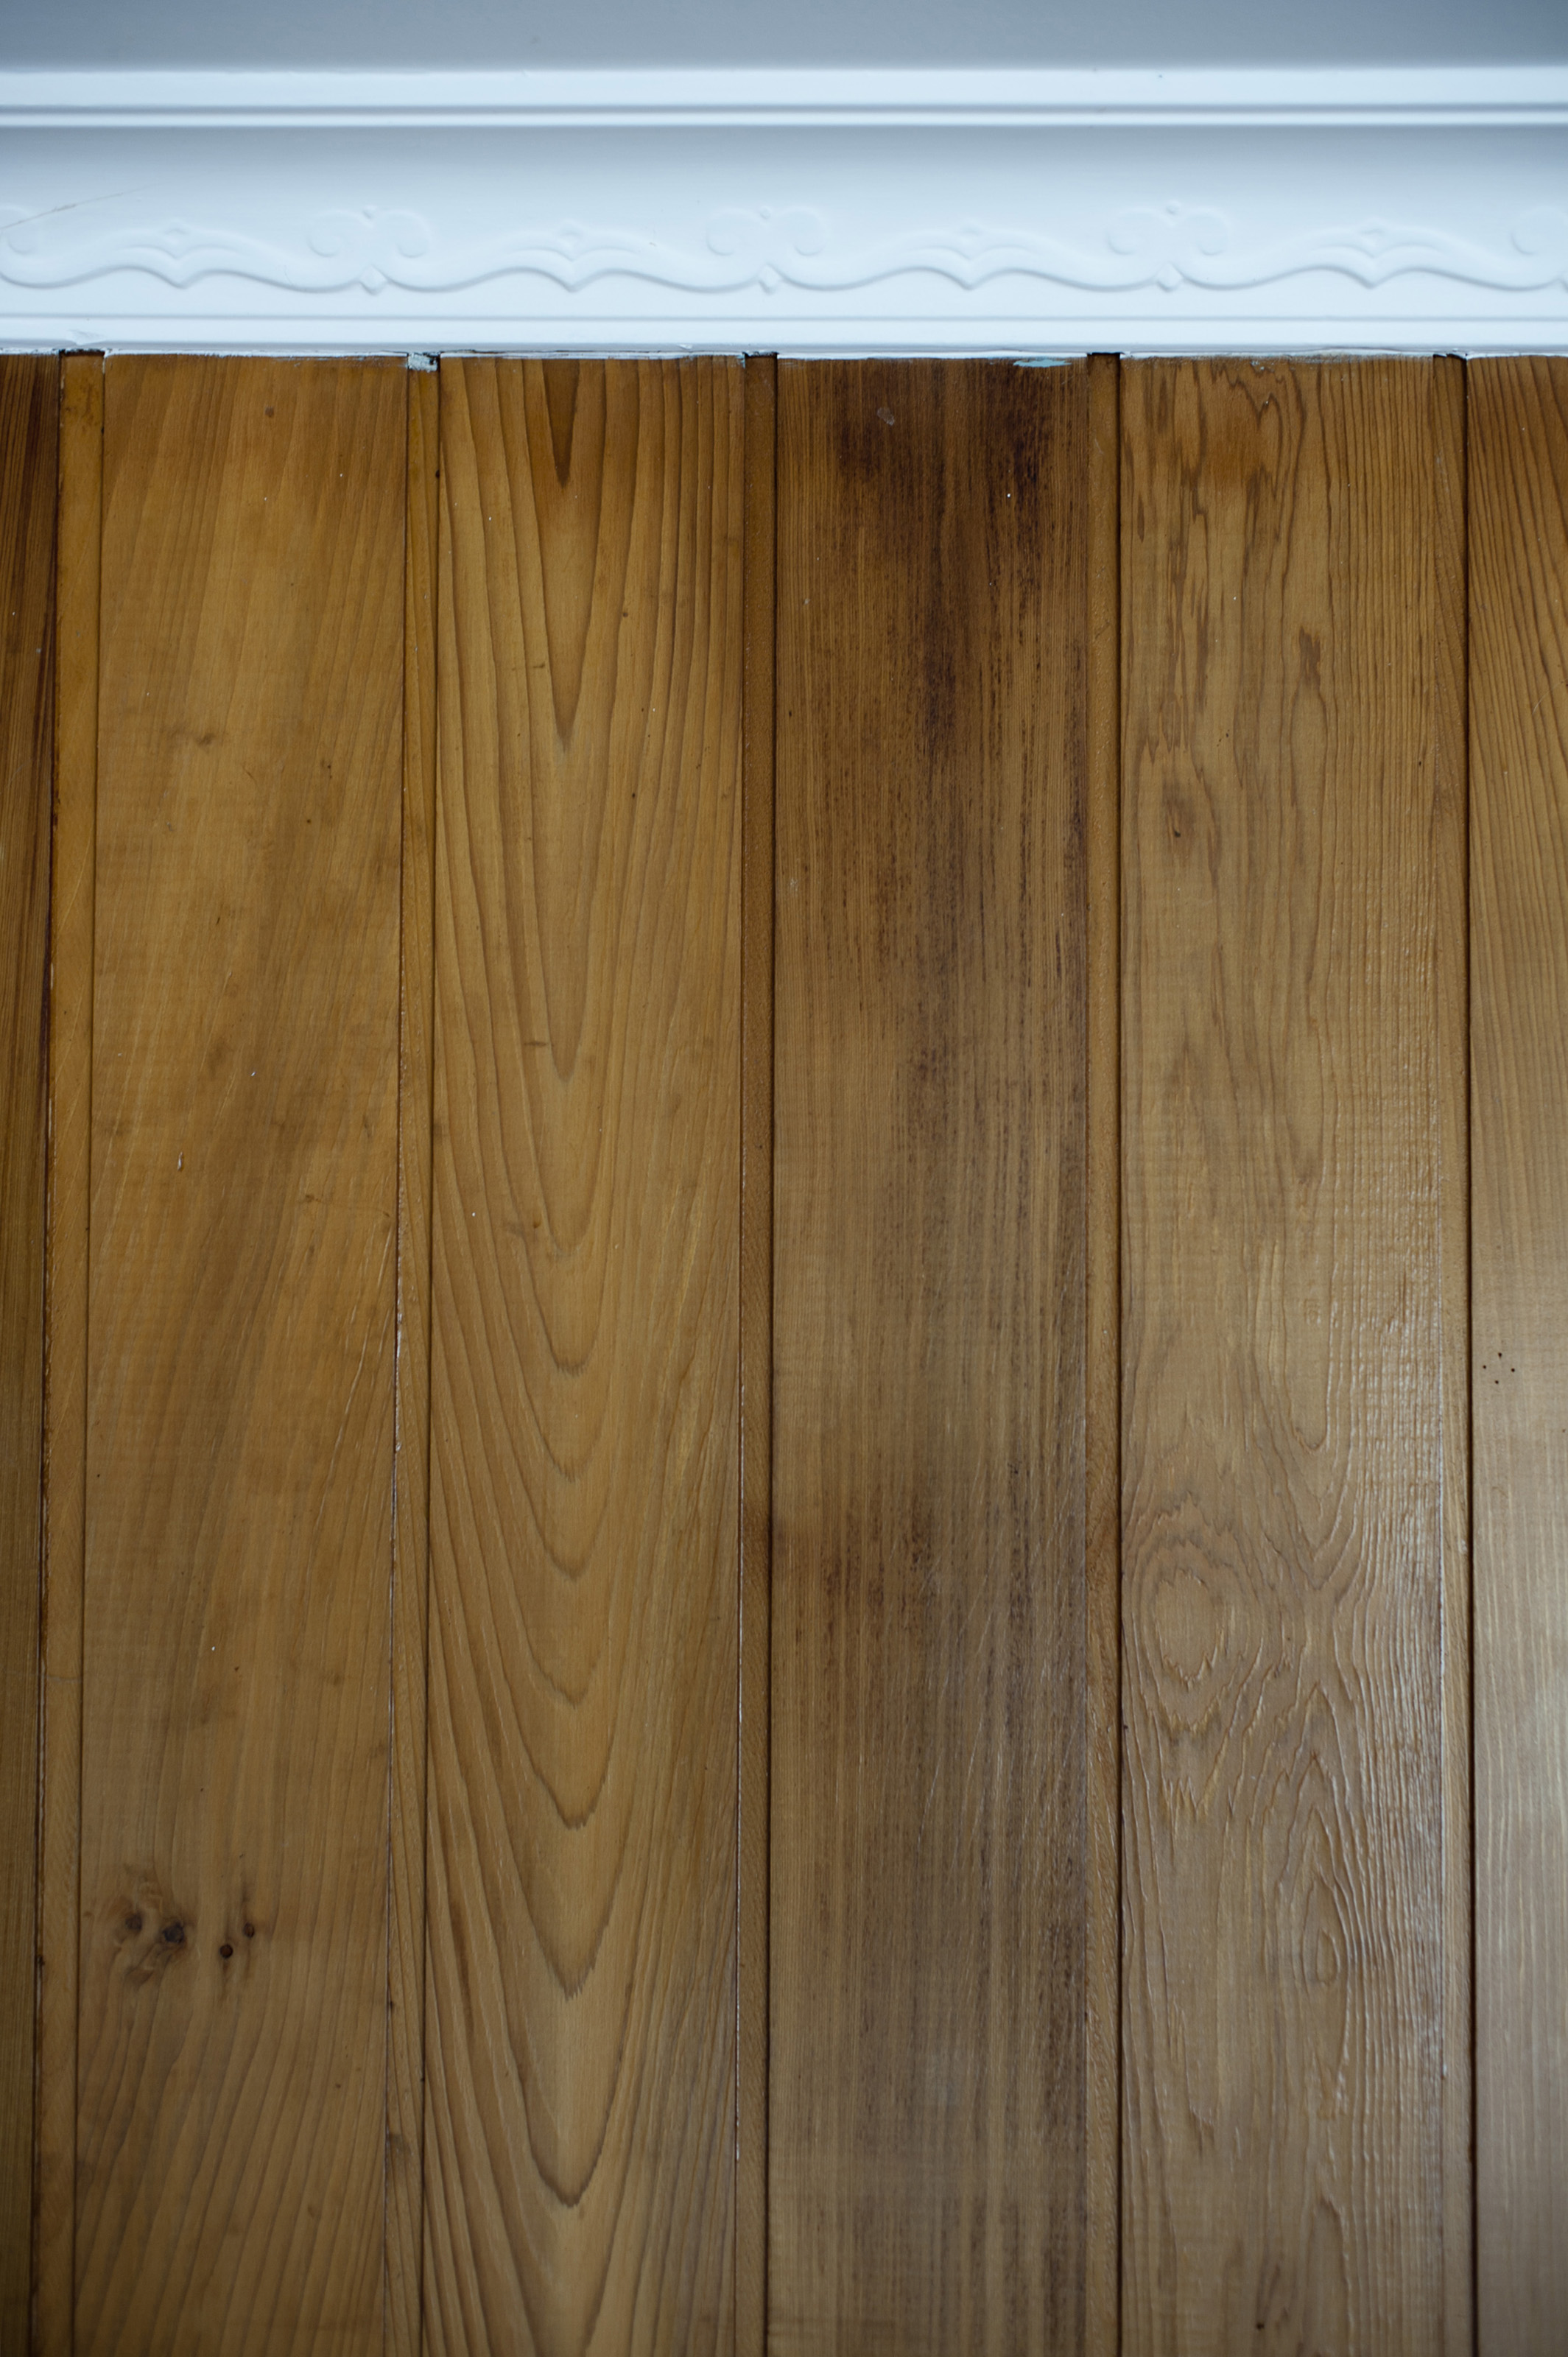 Close Up Of Architectural Decor Detail Laminate Wood Wall Paneling And  Decorative White Window Frame Border